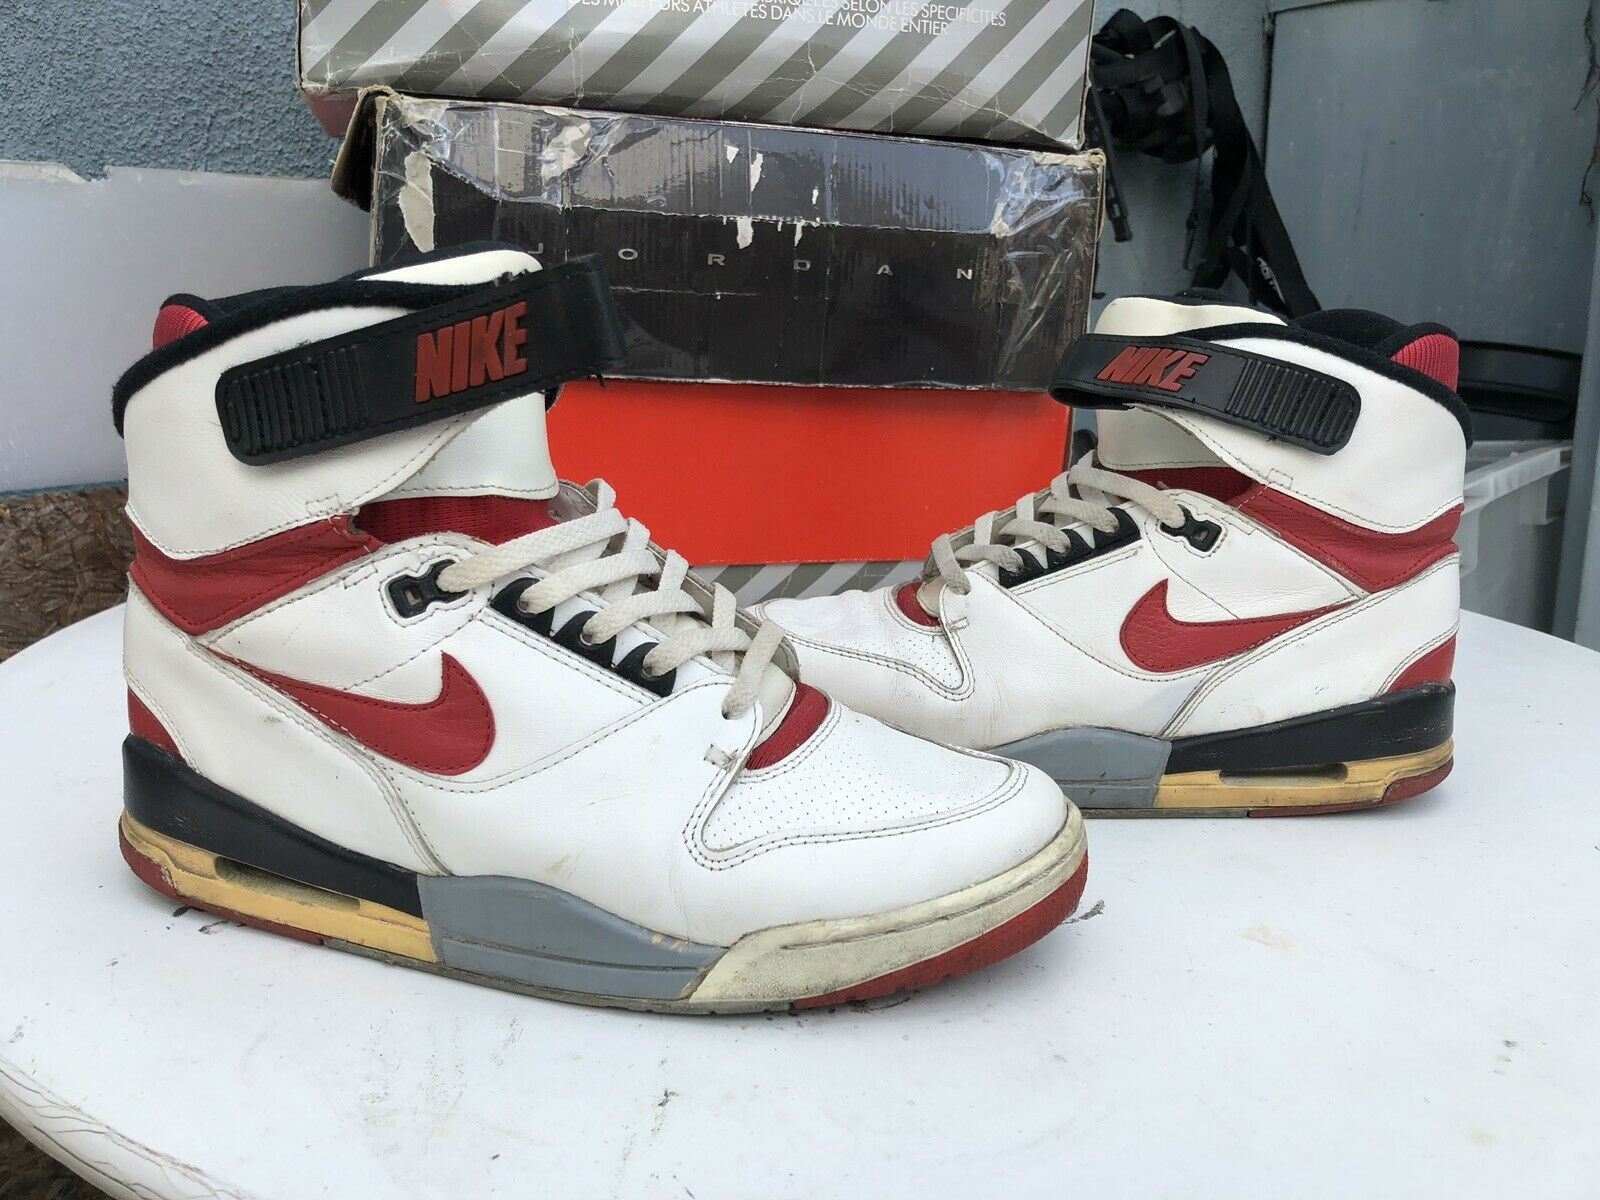 1988 Nike Air Revolution White Red (Size 9, Soleswapped)